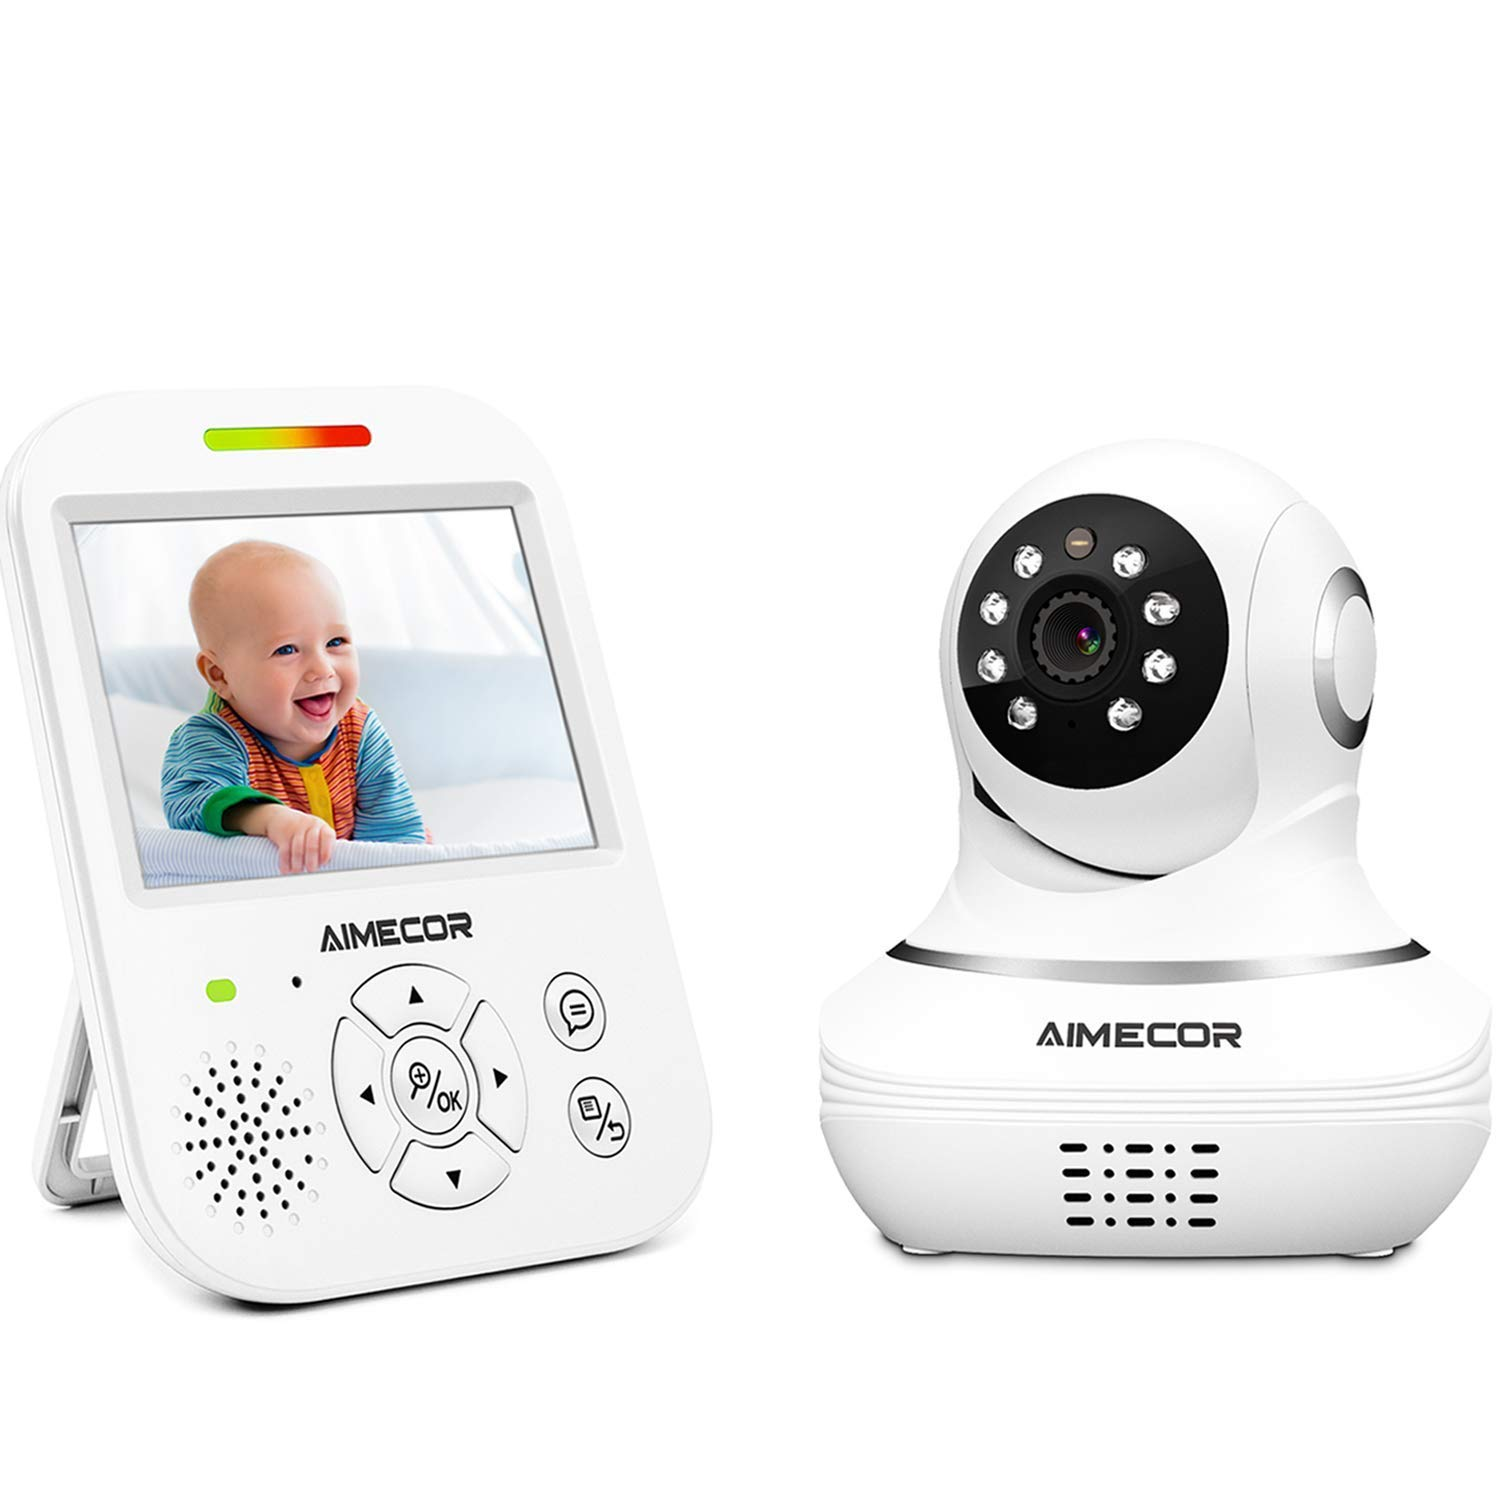 Video Baby Monitor with Camera - 3.5 inch IPS Display, Motorized Pan/Tilt,HD Night Vision Camera, 960ft Transmission Range, Temperature Monitoring,Include Compatible Mount Shelf (White) AIMECOR